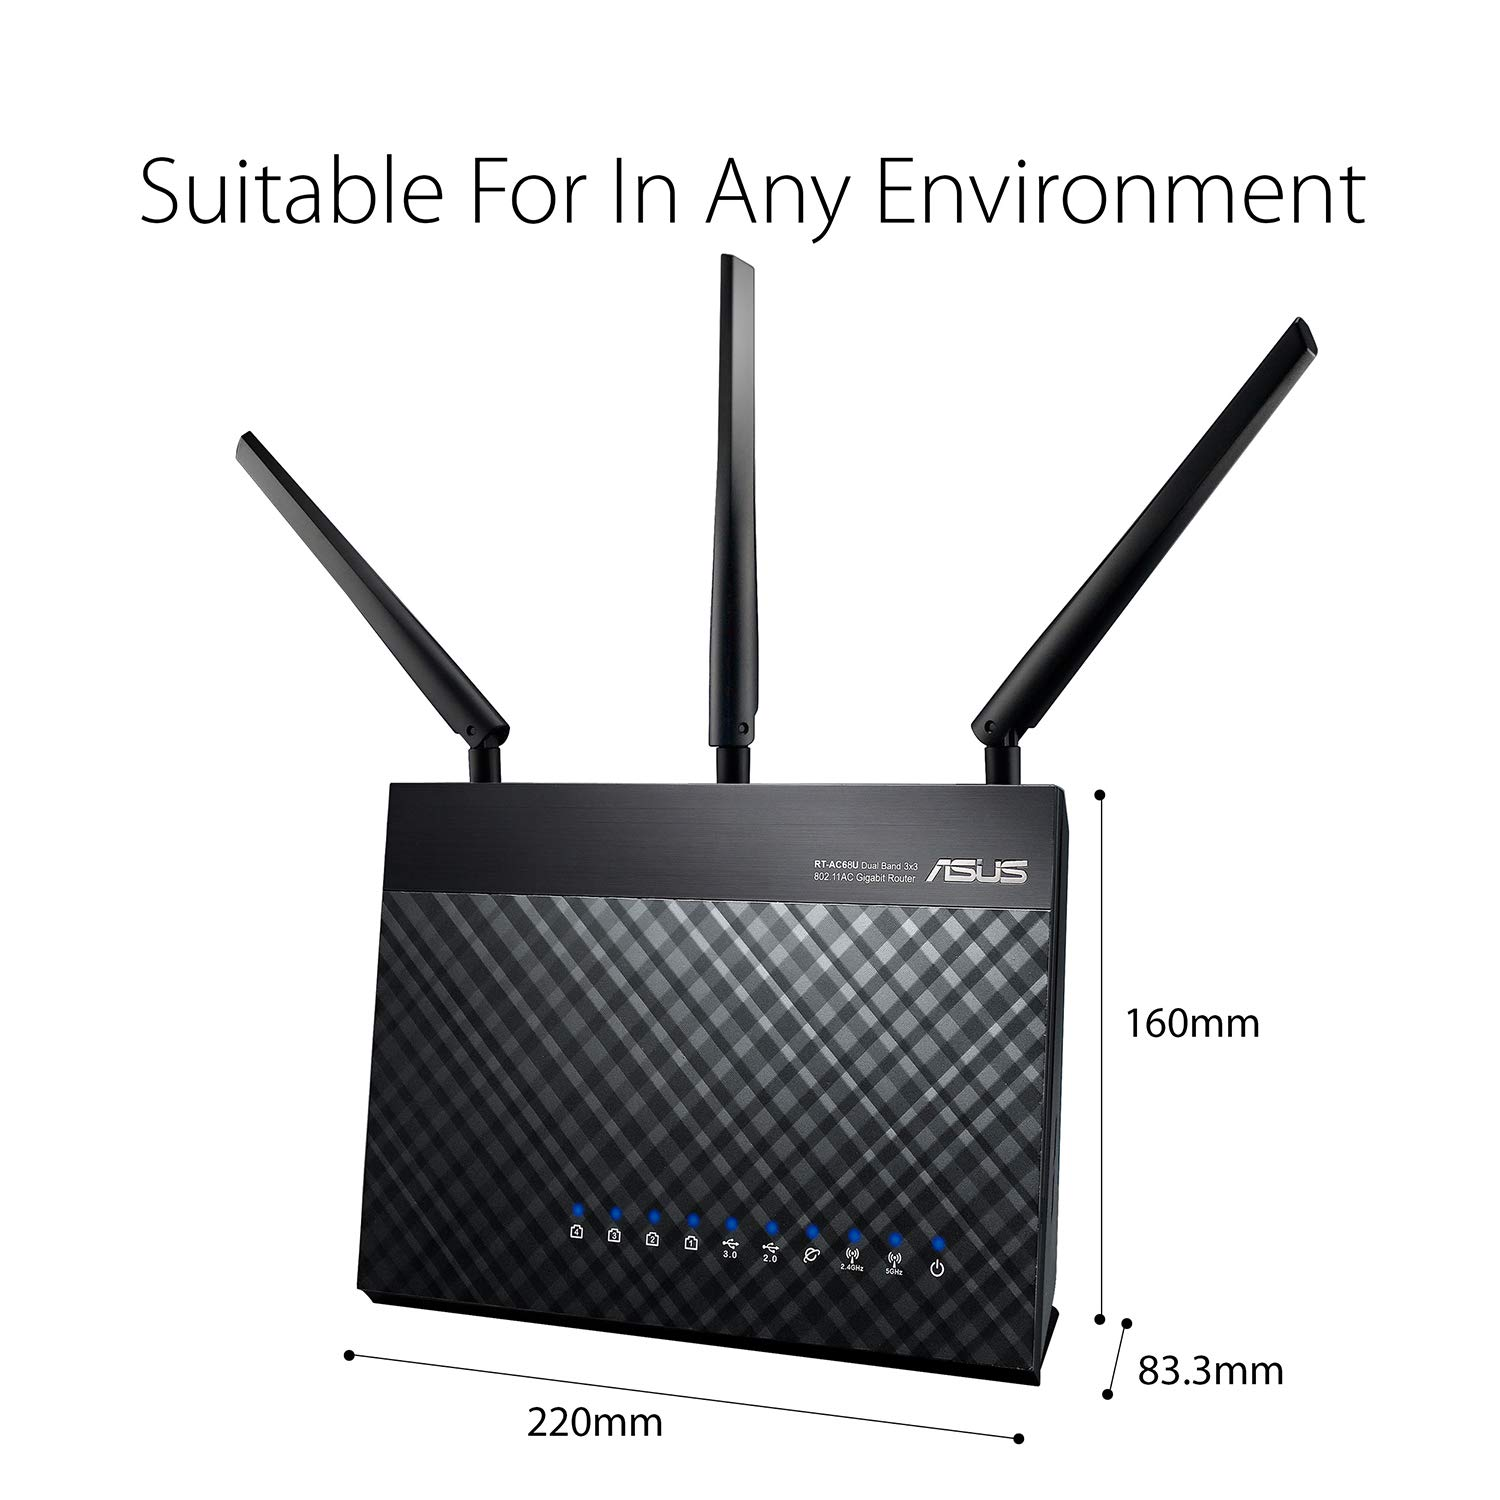 ASUS RT-AC86U Wi-Fi AC2900 (AI Mesh USB 3 0 Router, AiProtection by Trend  Micro, AI Mesh, WTFast Game Accelerator Adaptive QoS, Dual-WAN 3G/4G